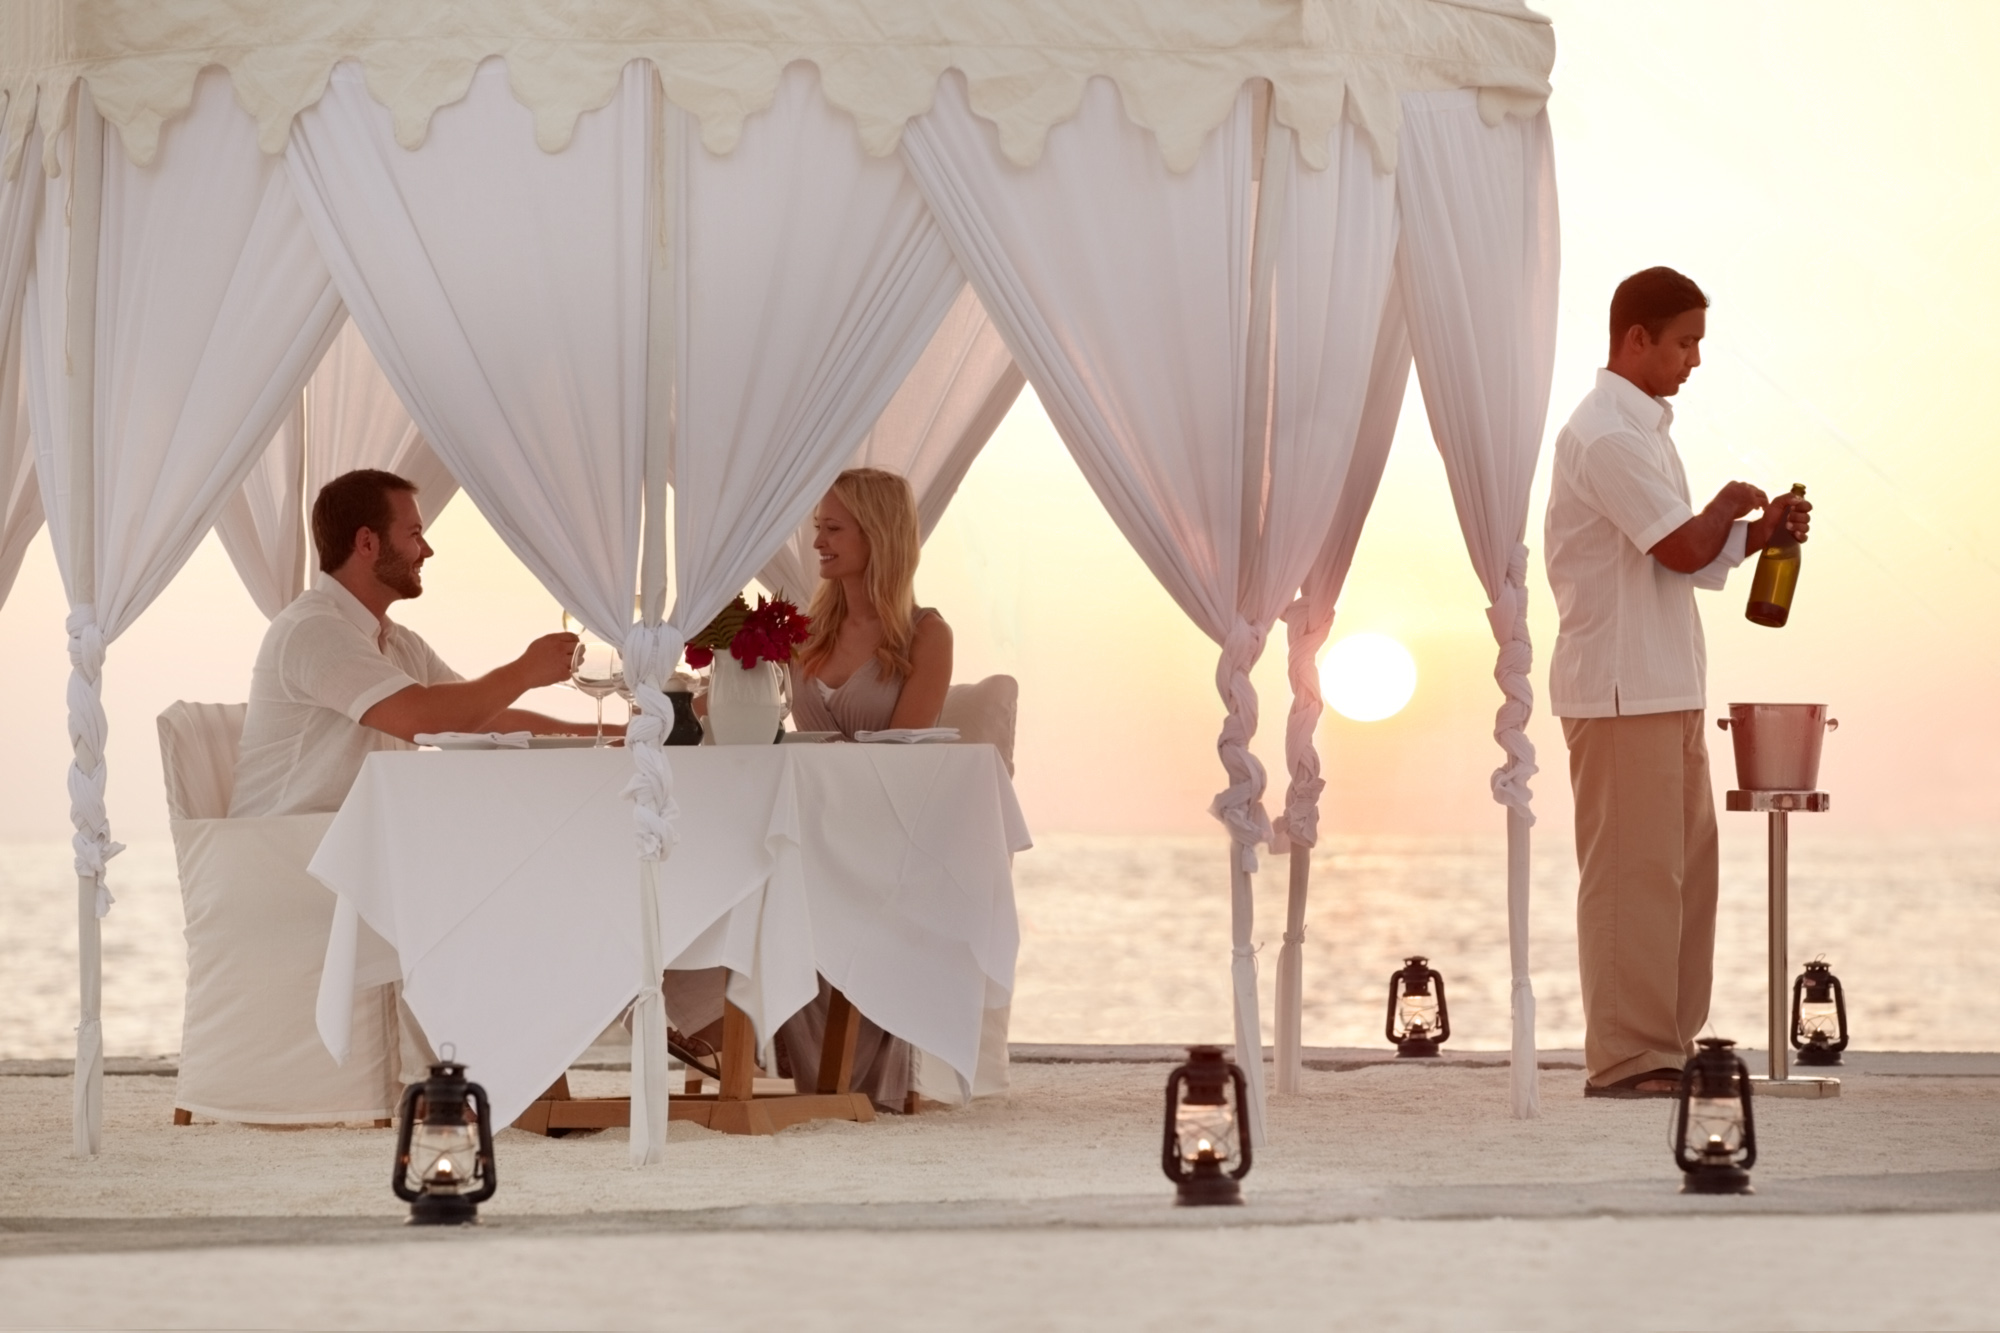 Couples Dining by design.jpg